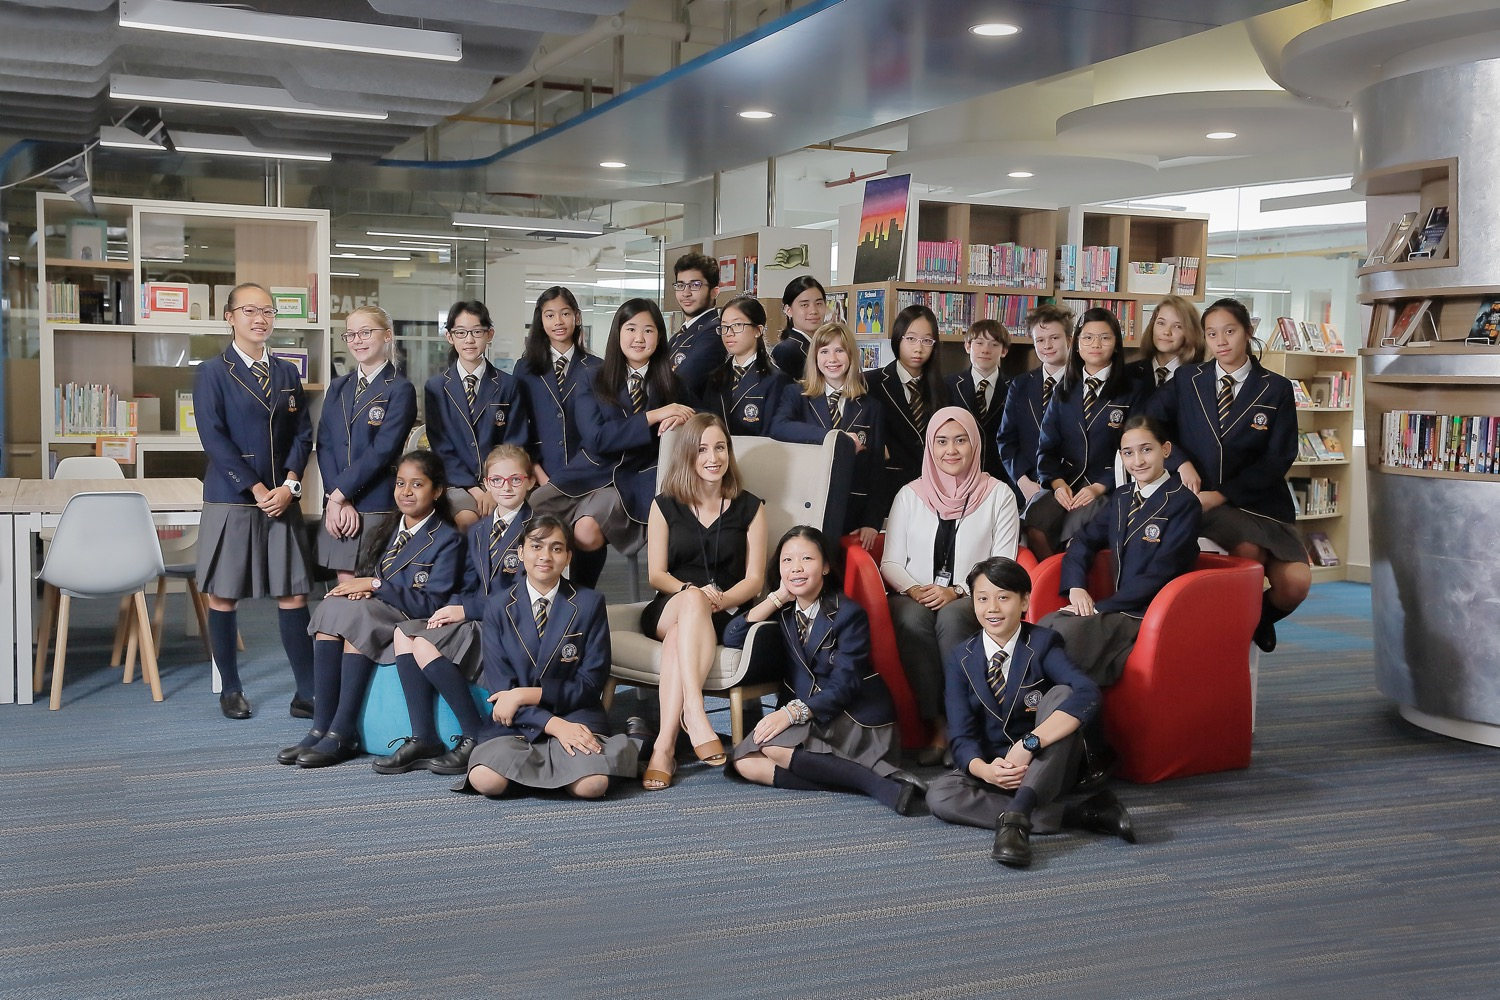 BSKL Secondary Librarian Group Pose